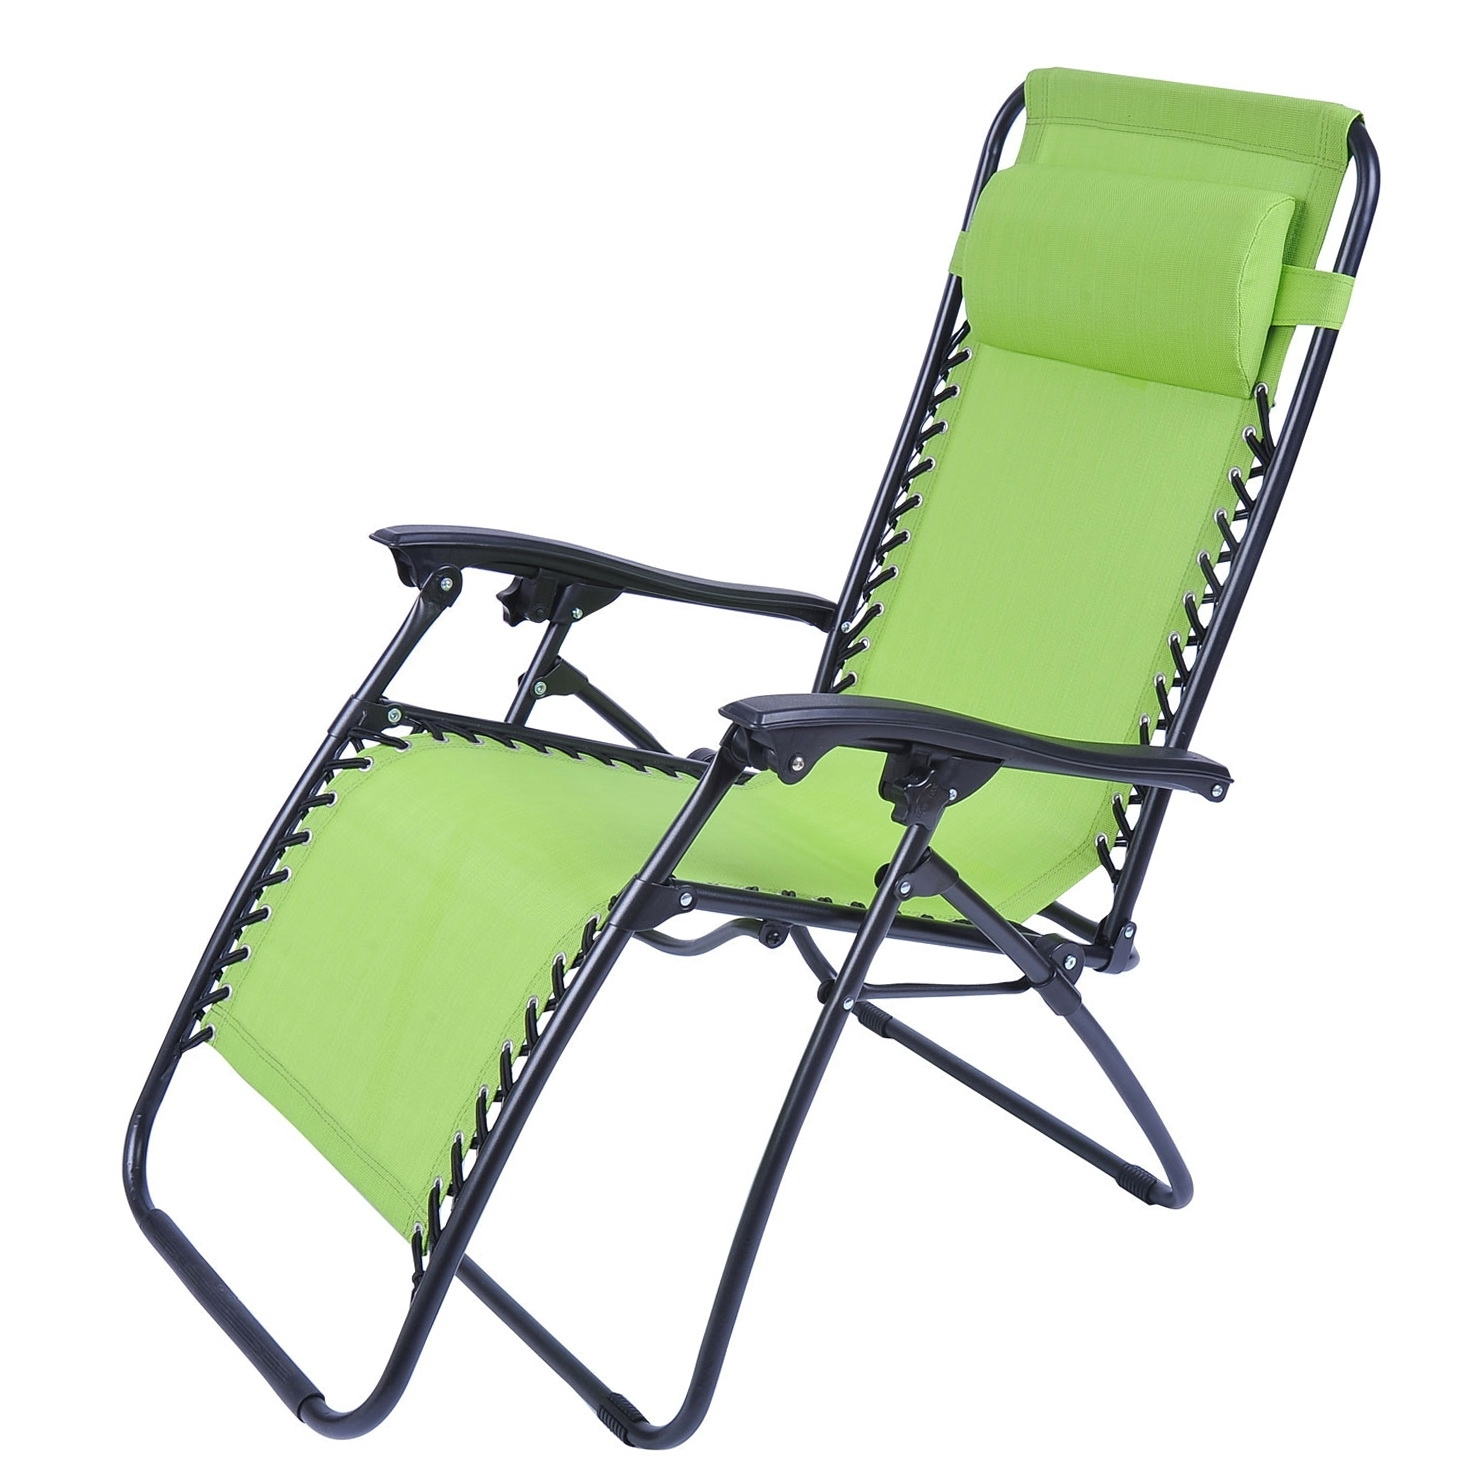 Folding Chaise Lounge Chair Patio Outdoor Pool Beach Lawn Recliner Regarding 2017 Zero Chaise Lounges (View 6 of 15)